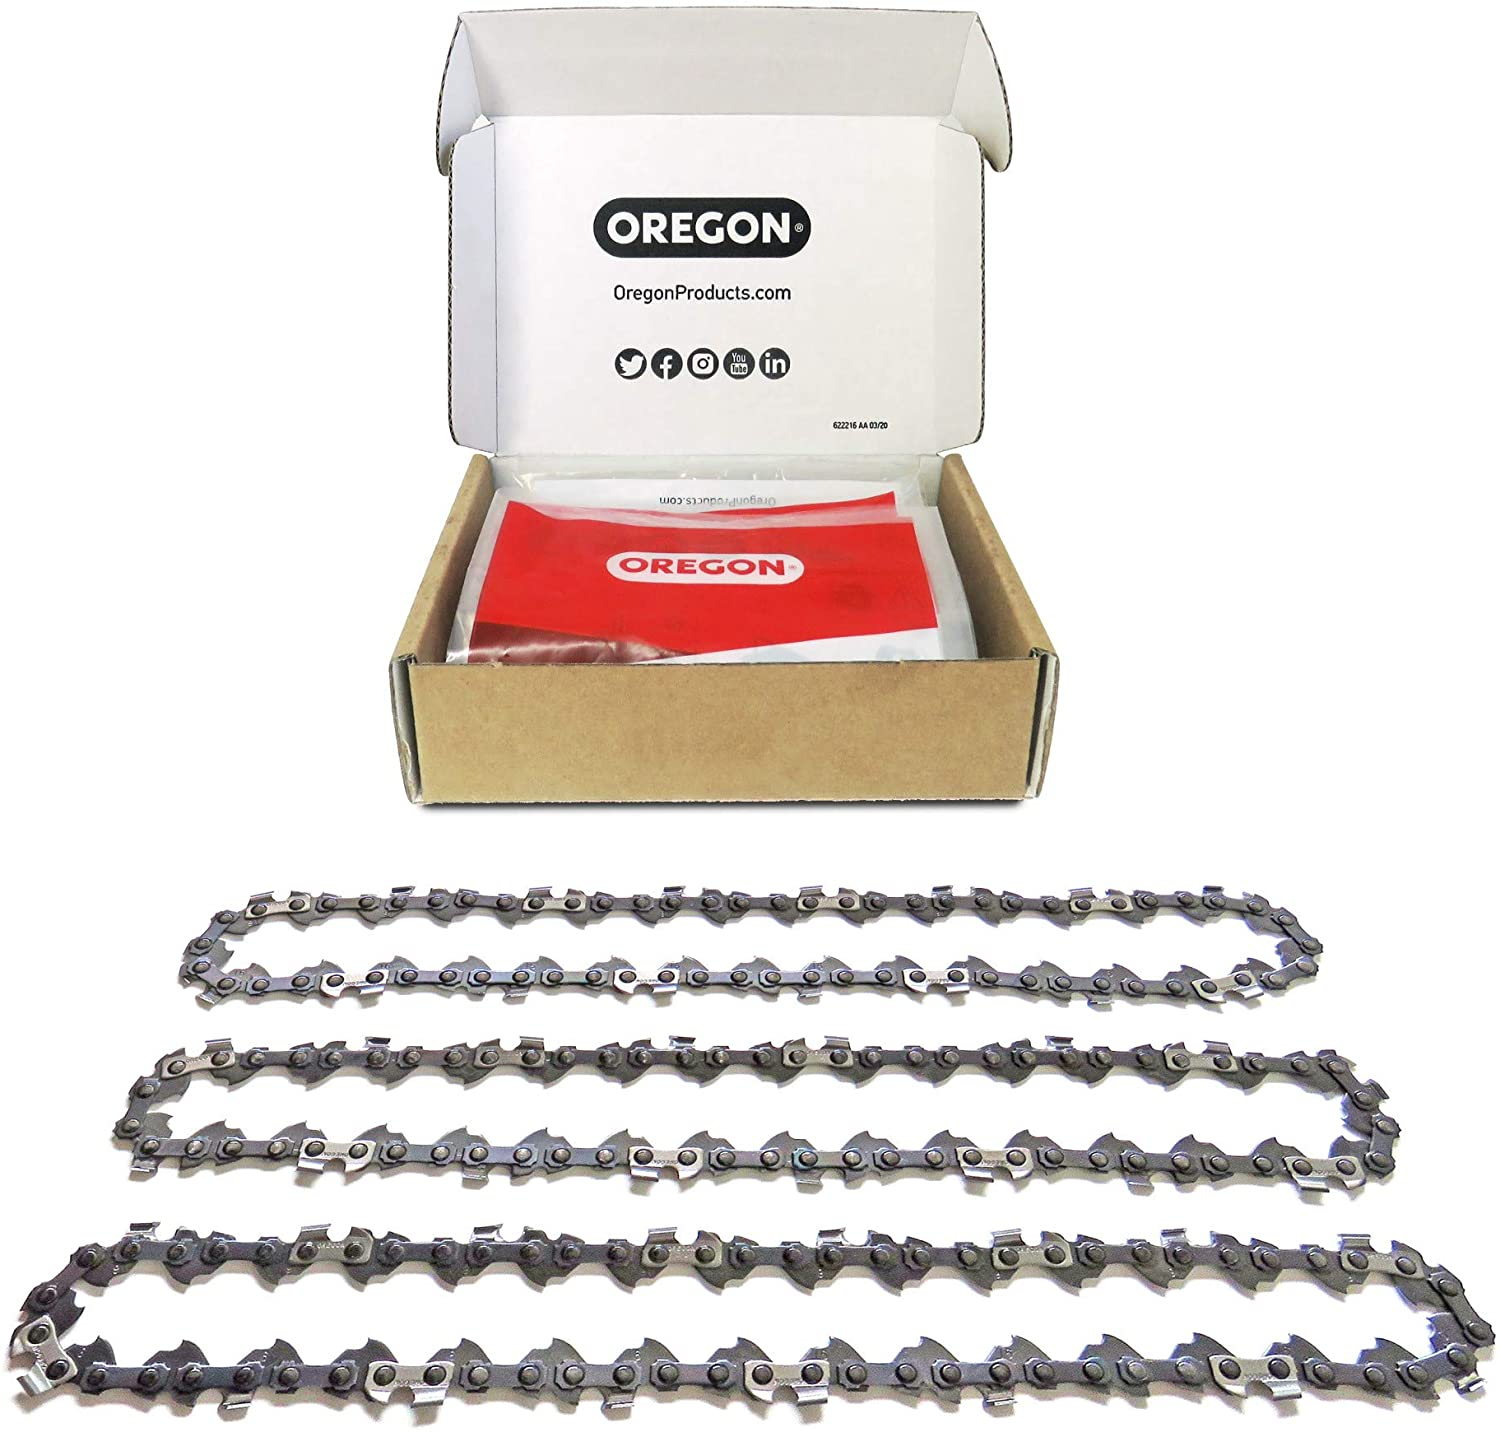 Craftsman New Homelite Fits Echo Poulan and More 27856 14-Inch Guide Bar and AdvanceCut S52 Chainsaw Chain Combo